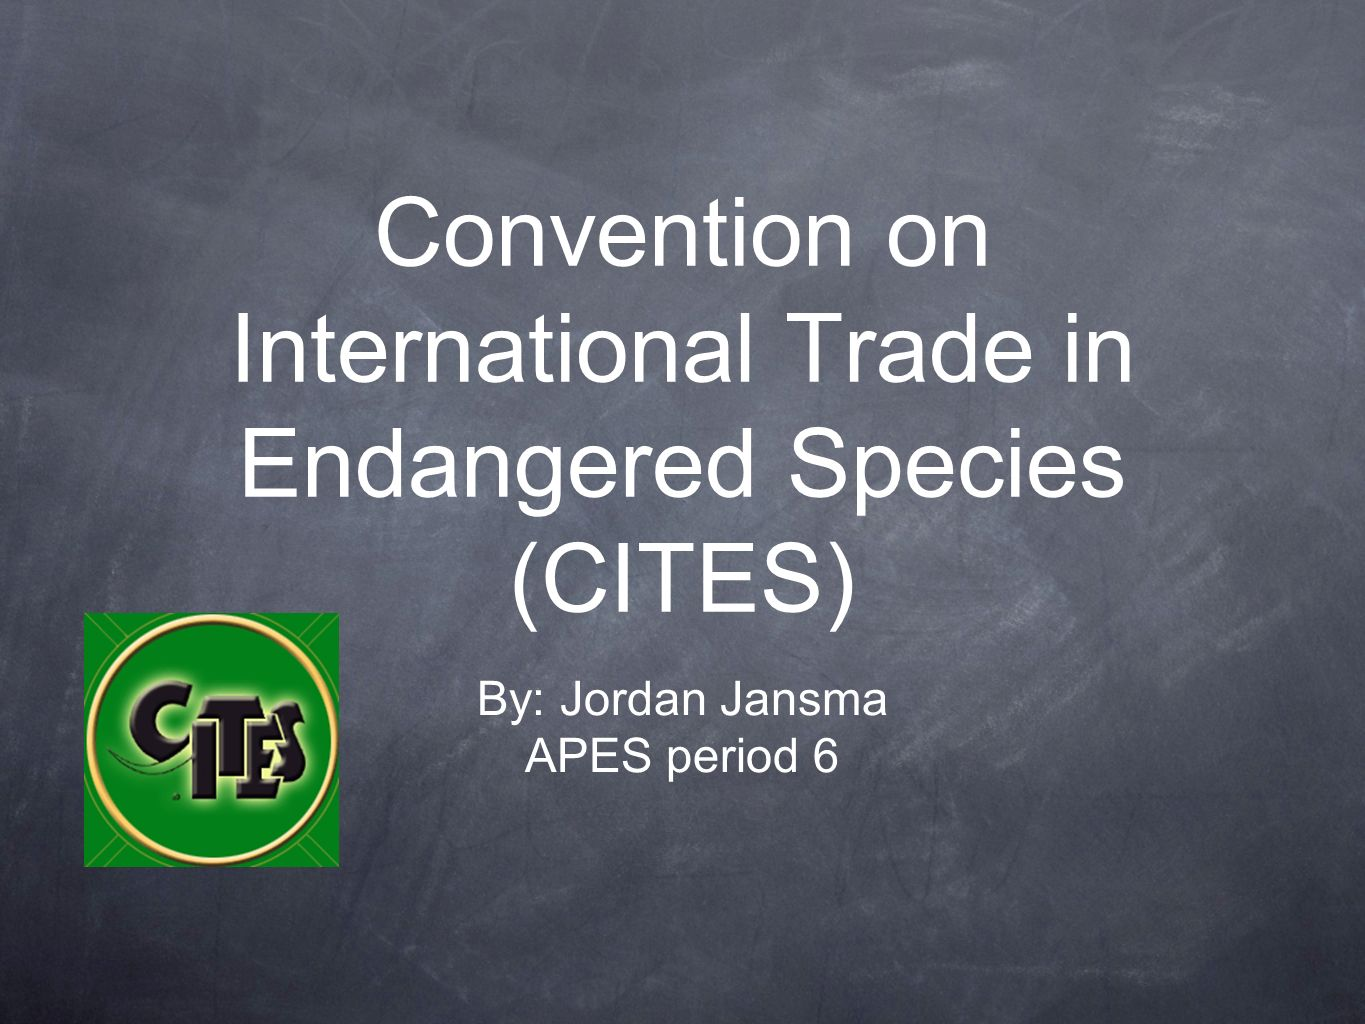 Convention on International Trade in Endangered Species (CITES)